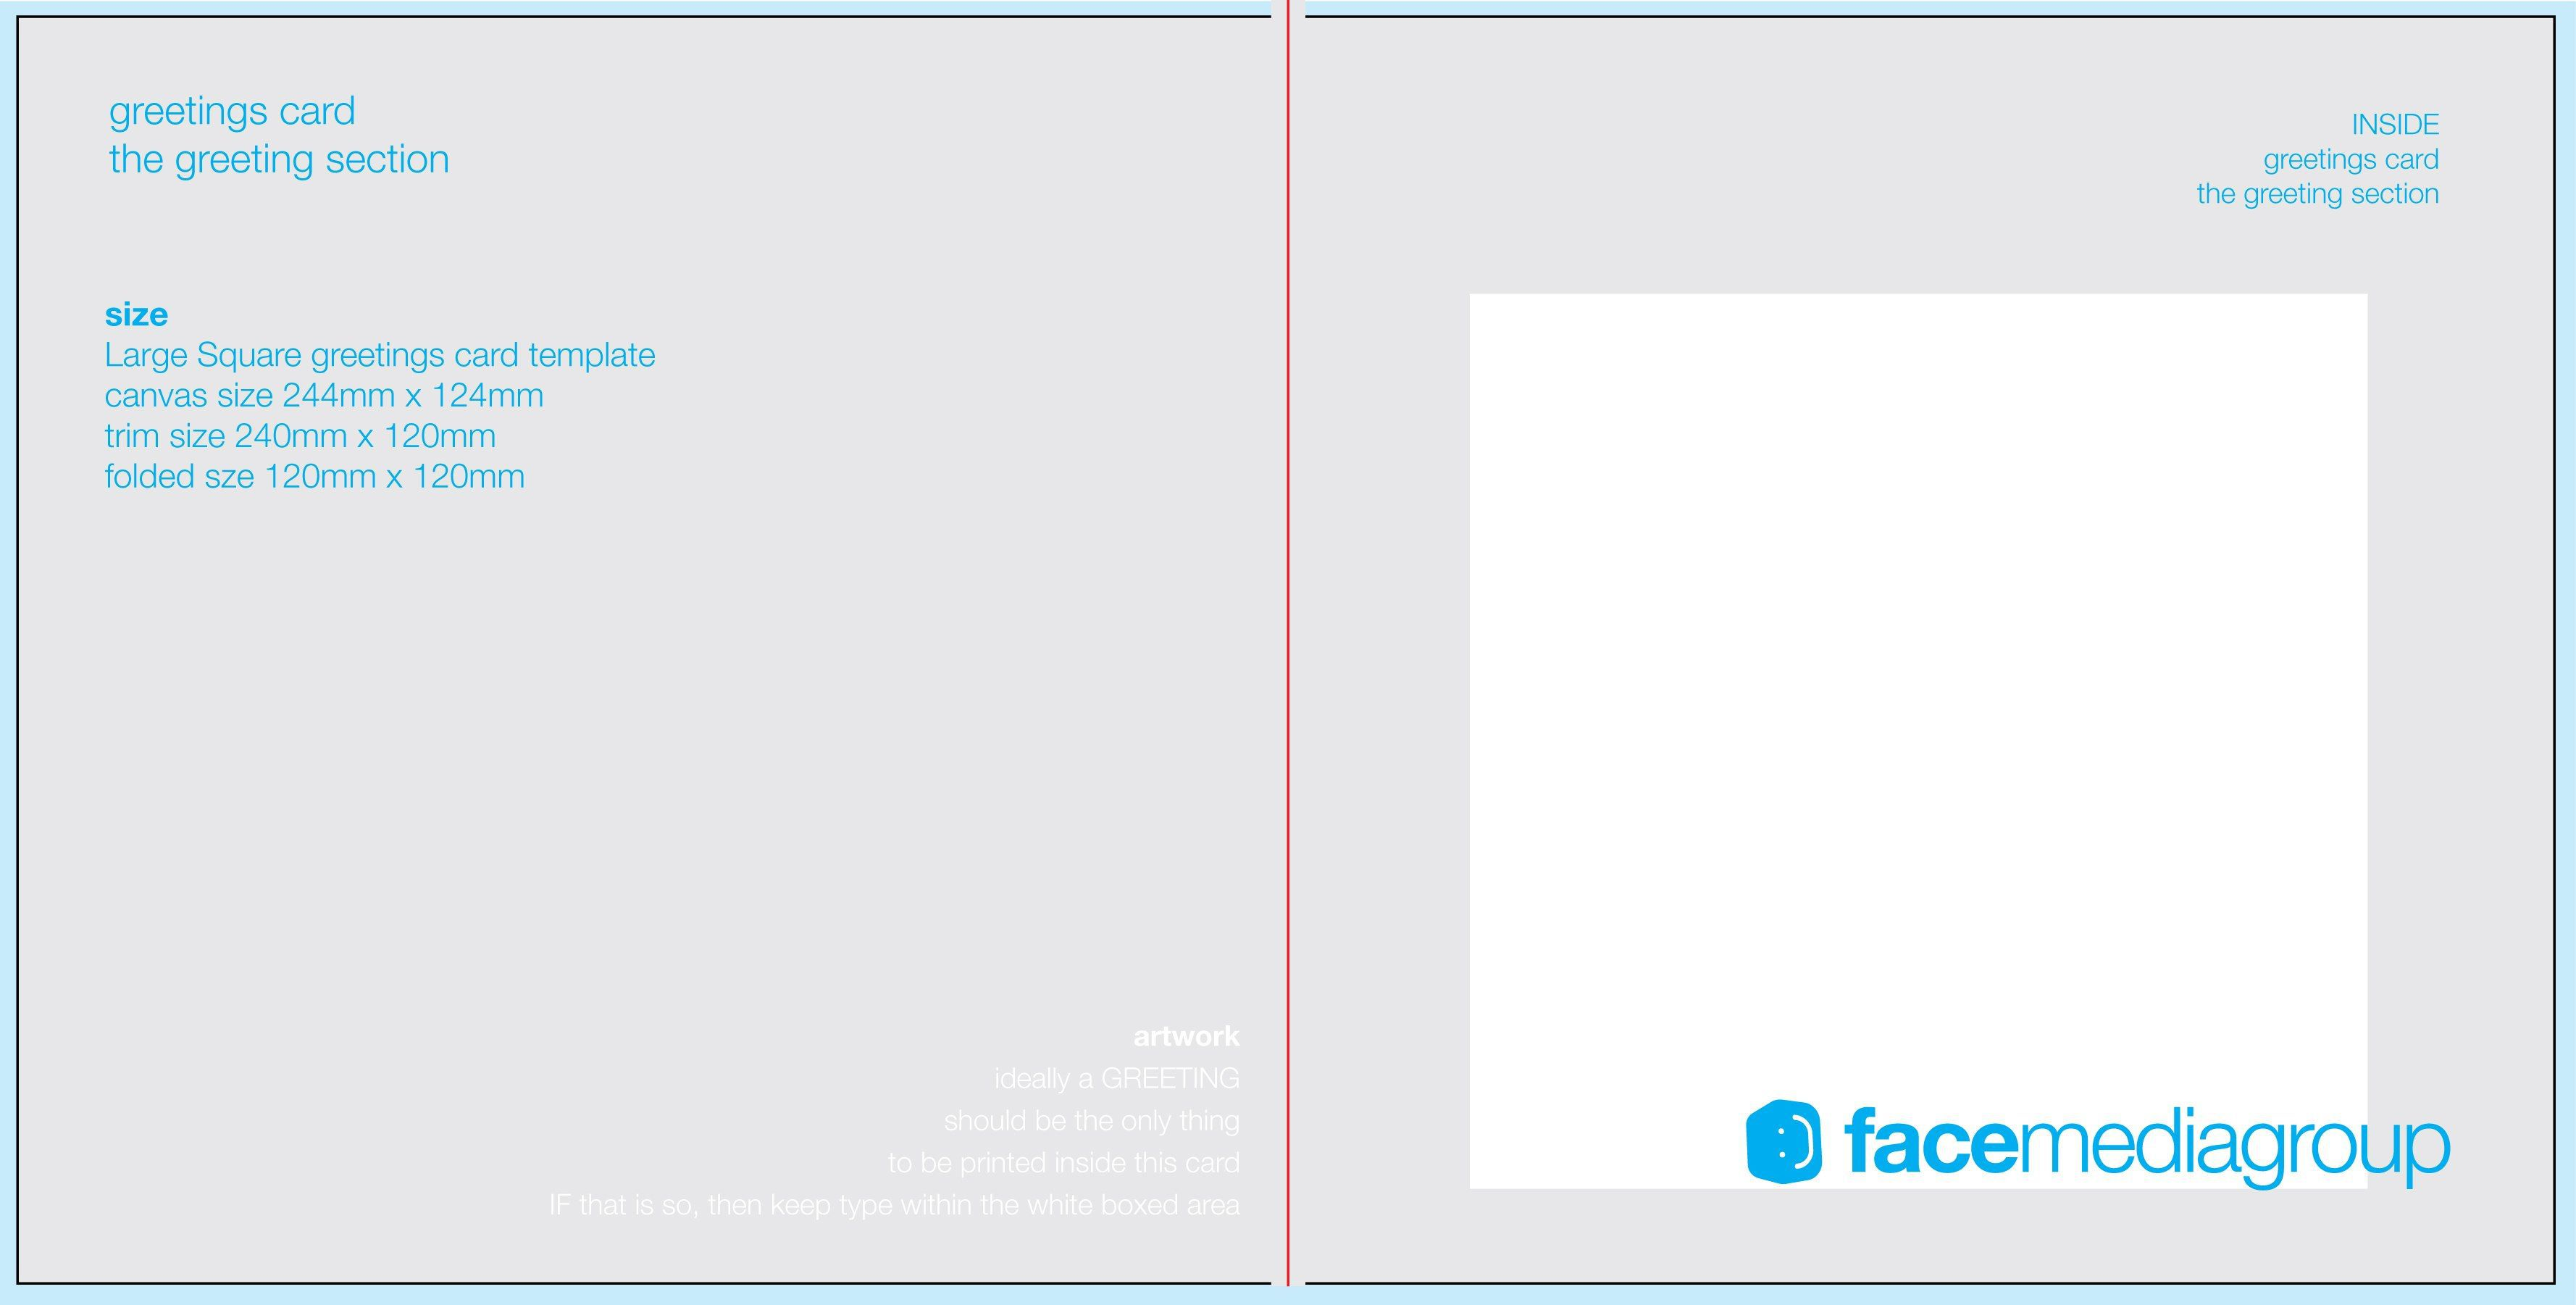 005 Unforgettable Microsoft Word Greeting Card Template Inspiration  Birthday Blank Free 2007Full